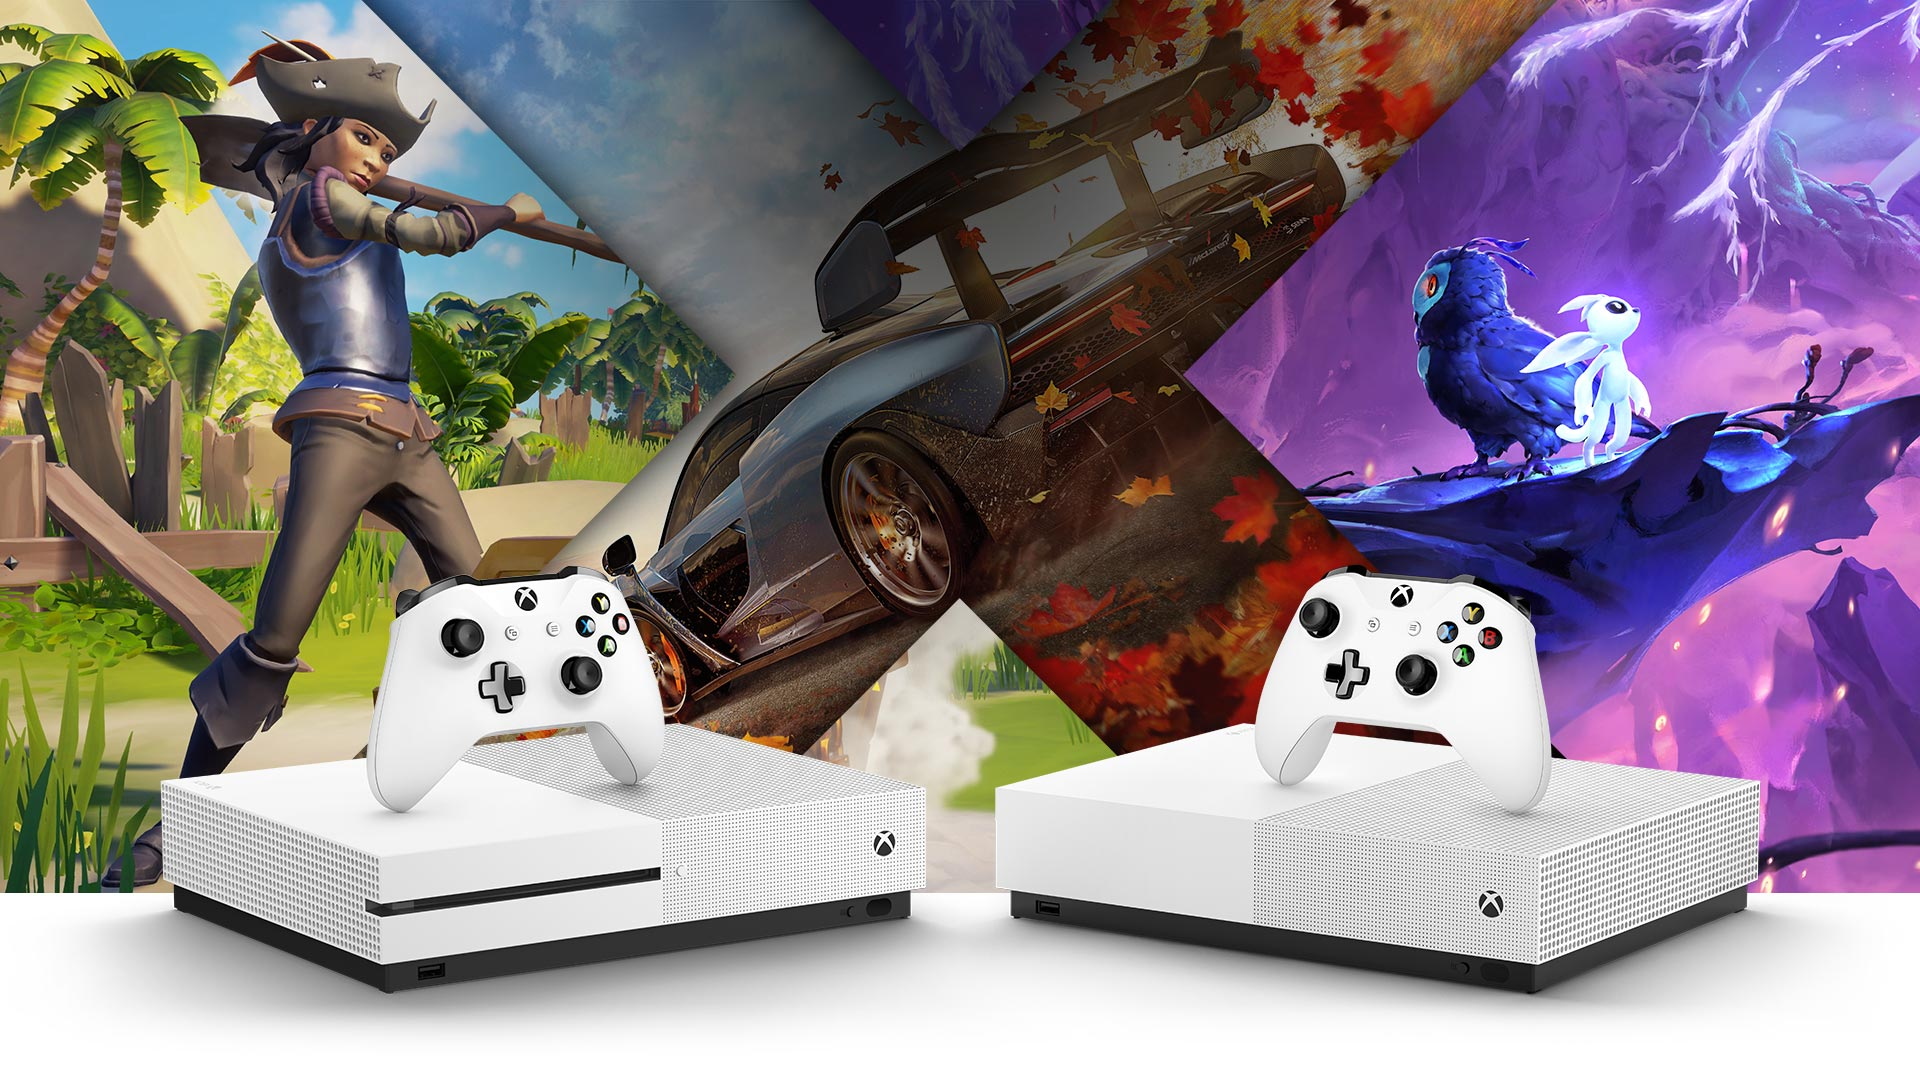 En bild på en Xbox One S och Xbox One S All Digital Edition omgivna av bilder från Sea of Thieves, Forza Horizon 4 och Ori and the Will of Wisps